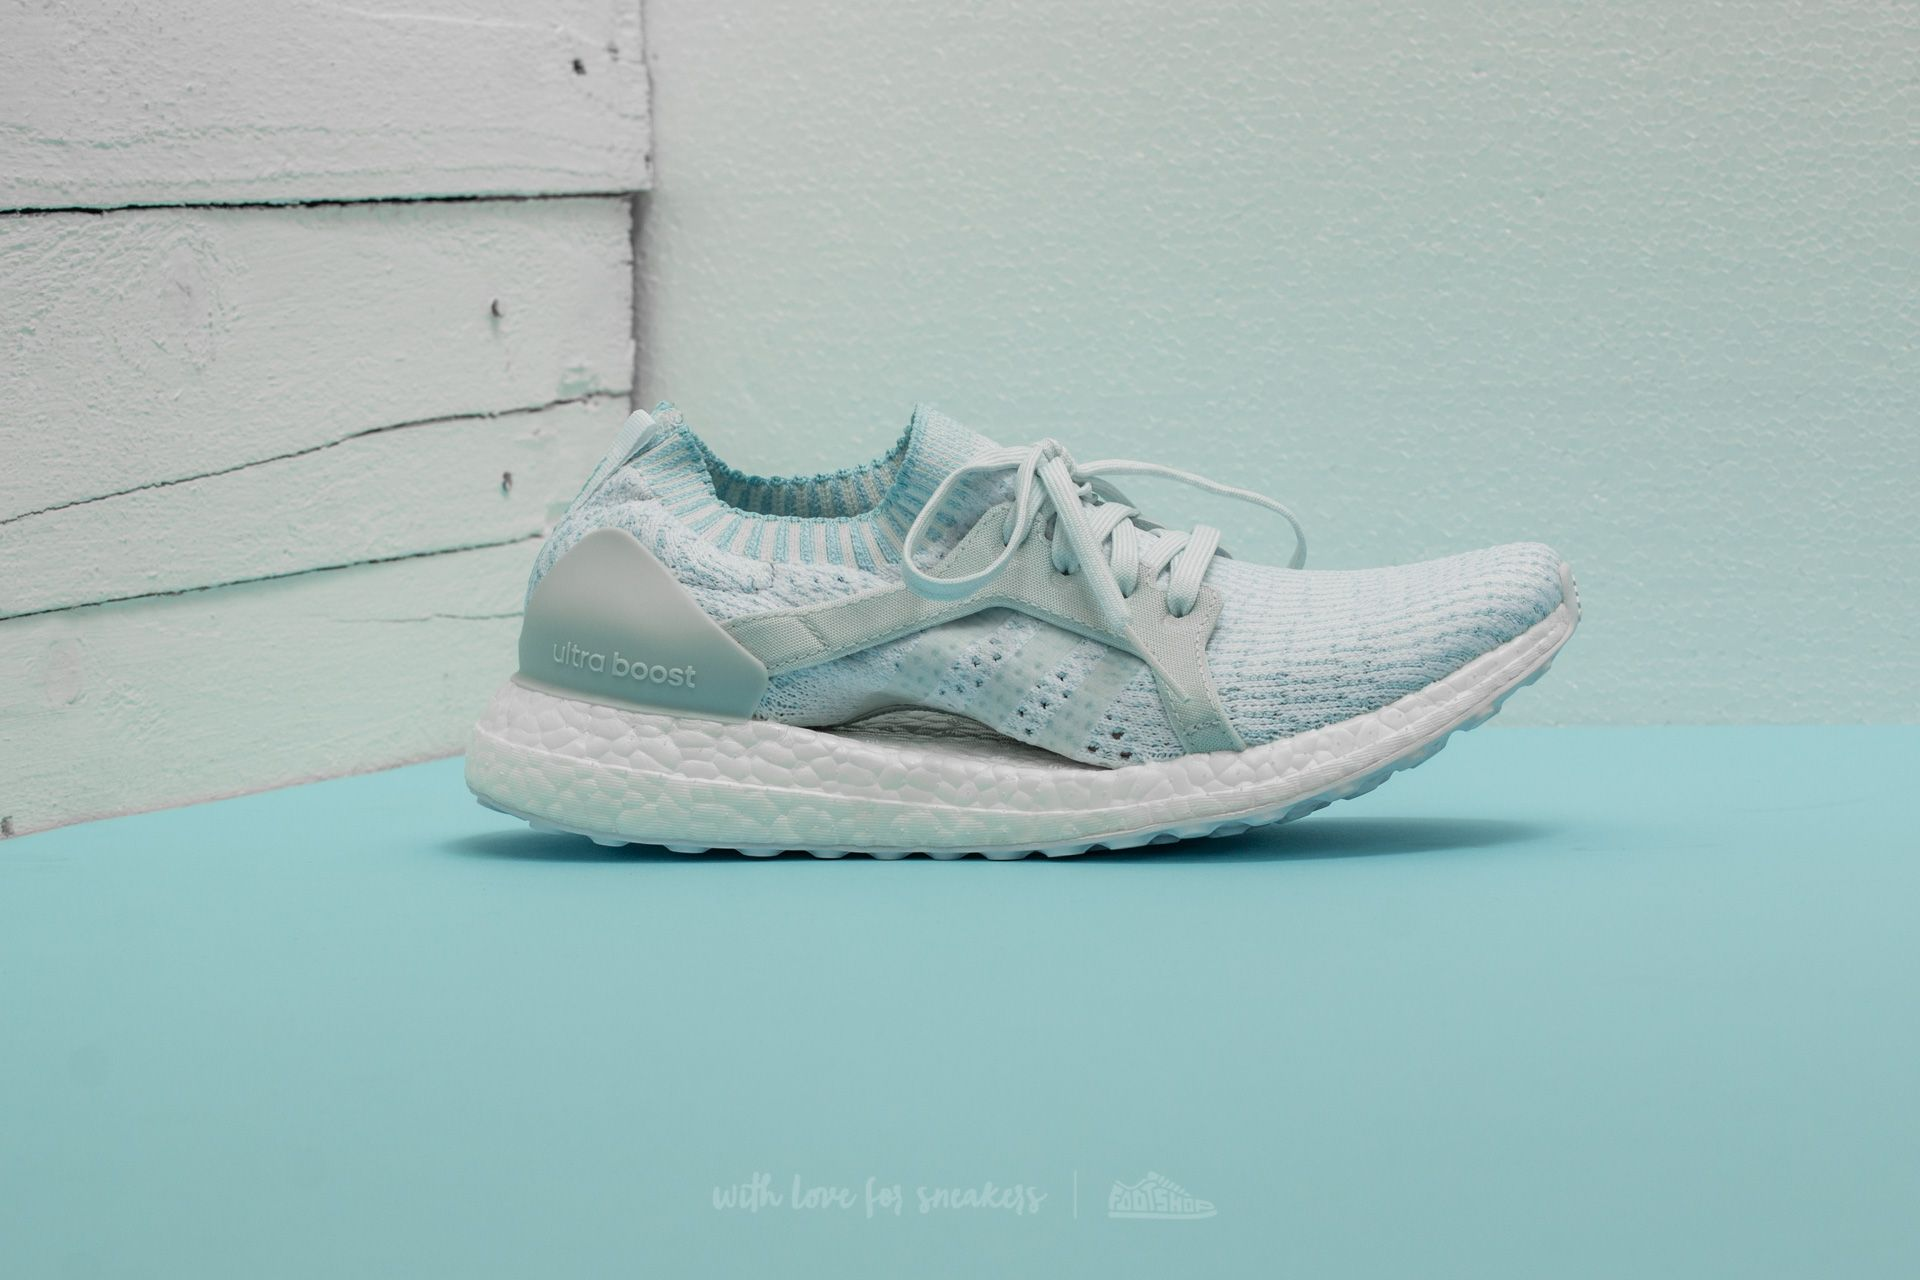 new style c1c80 16811 adidas x Parley UltraBoost X Icey Blue/ Ftw White/ Icey Blue ...